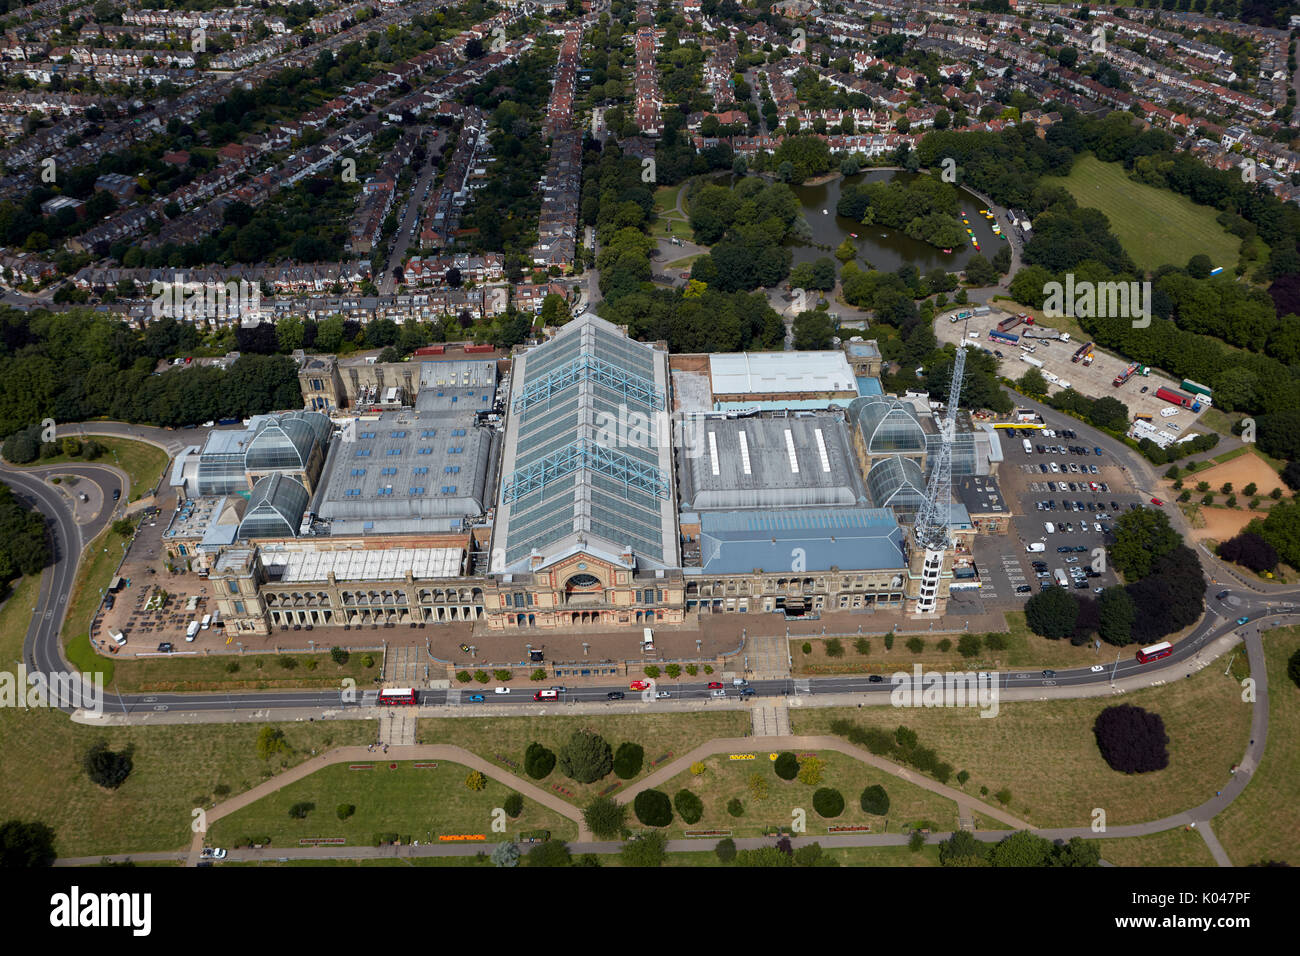 An aerial view of Alexandra Palace, North London - Stock Image